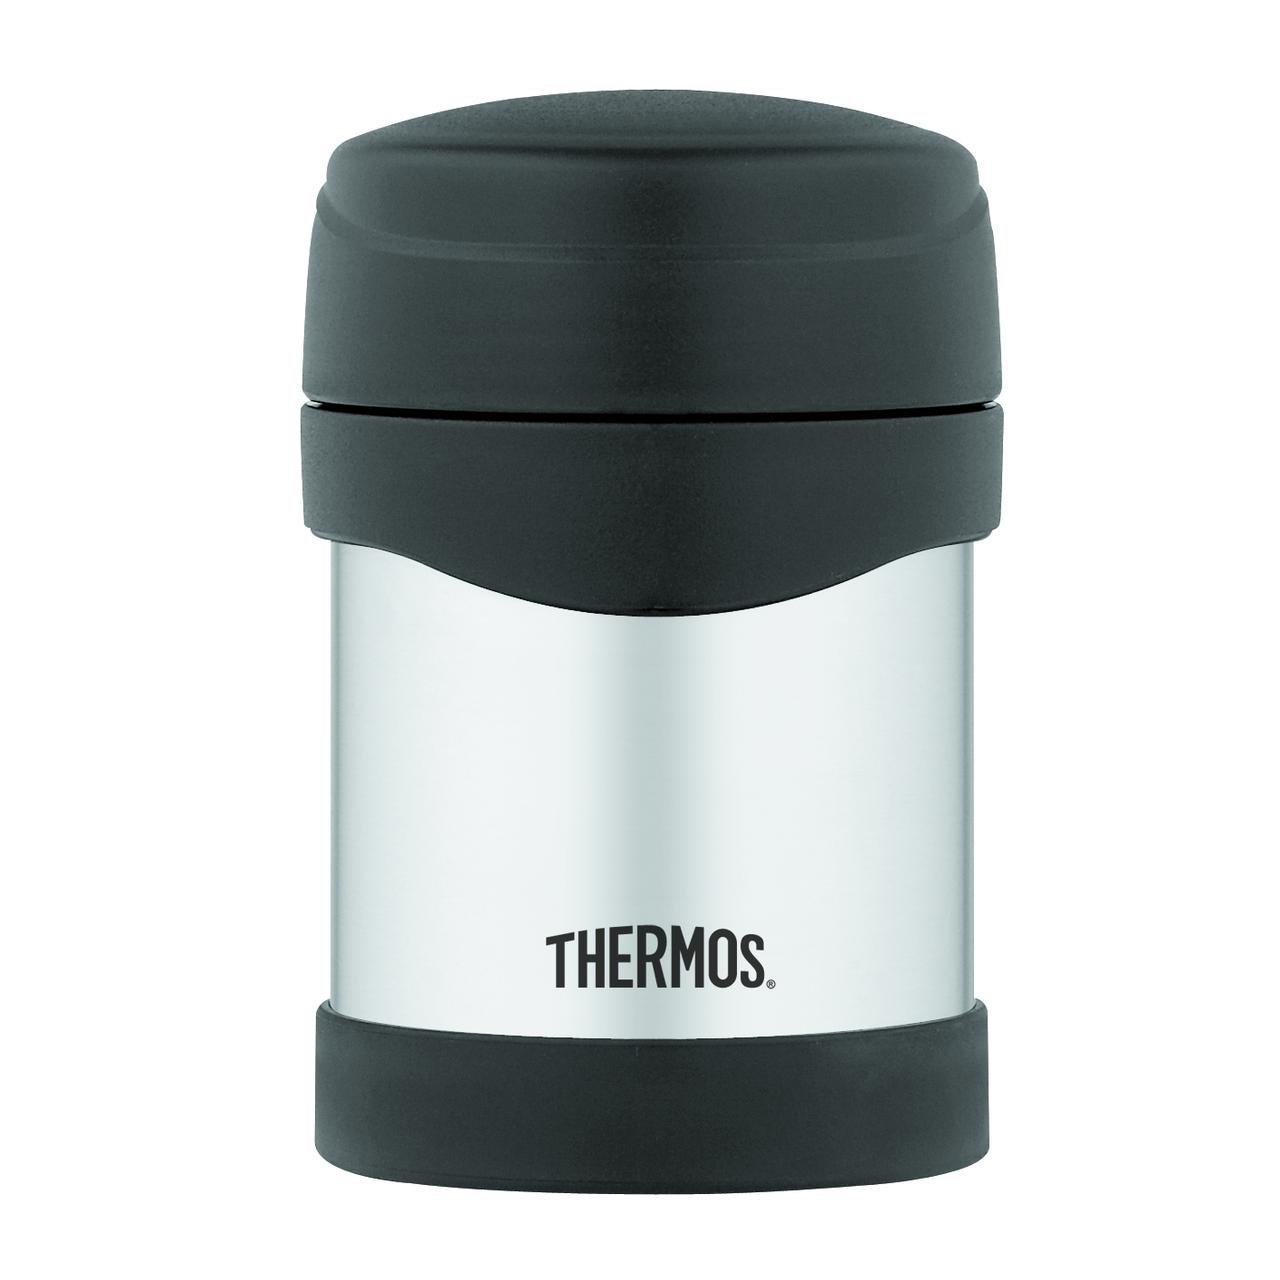 thermos 10 oz stainless steel food jar black flask coffee soup vacuum sealed new ebay. Black Bedroom Furniture Sets. Home Design Ideas